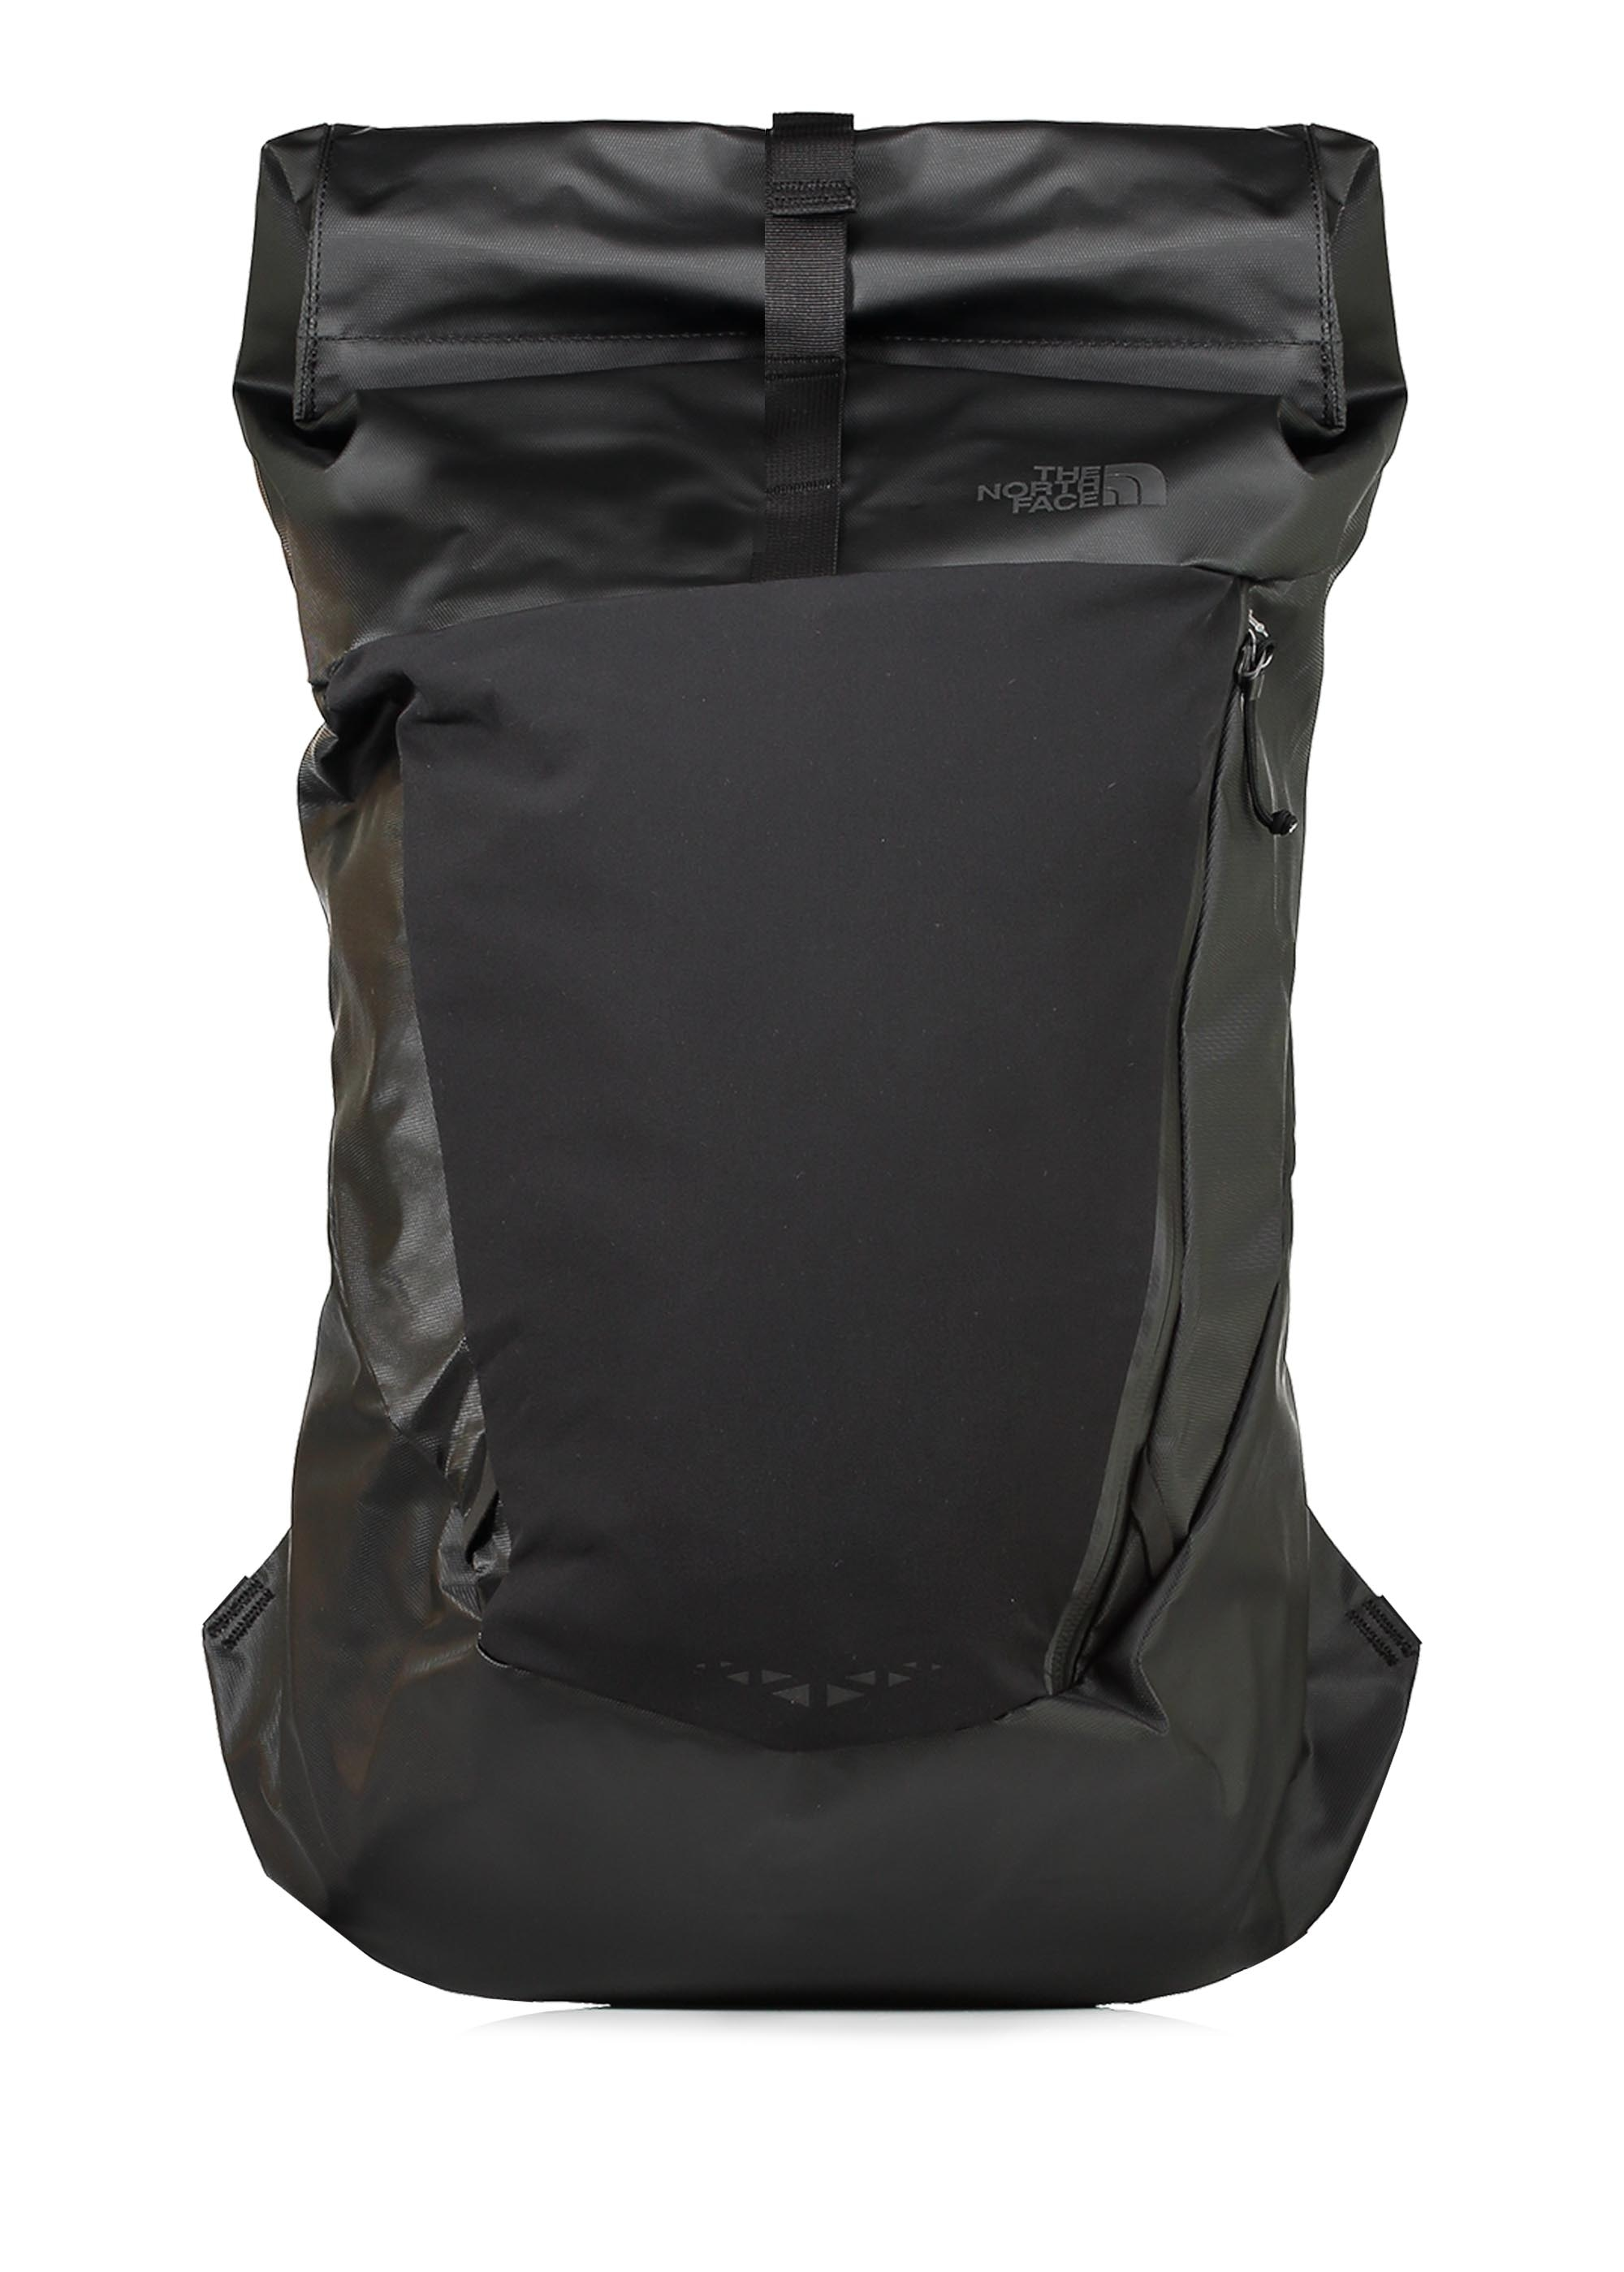 5f308ba10 North Face Waterproof Backpack Uk - CEAGESP